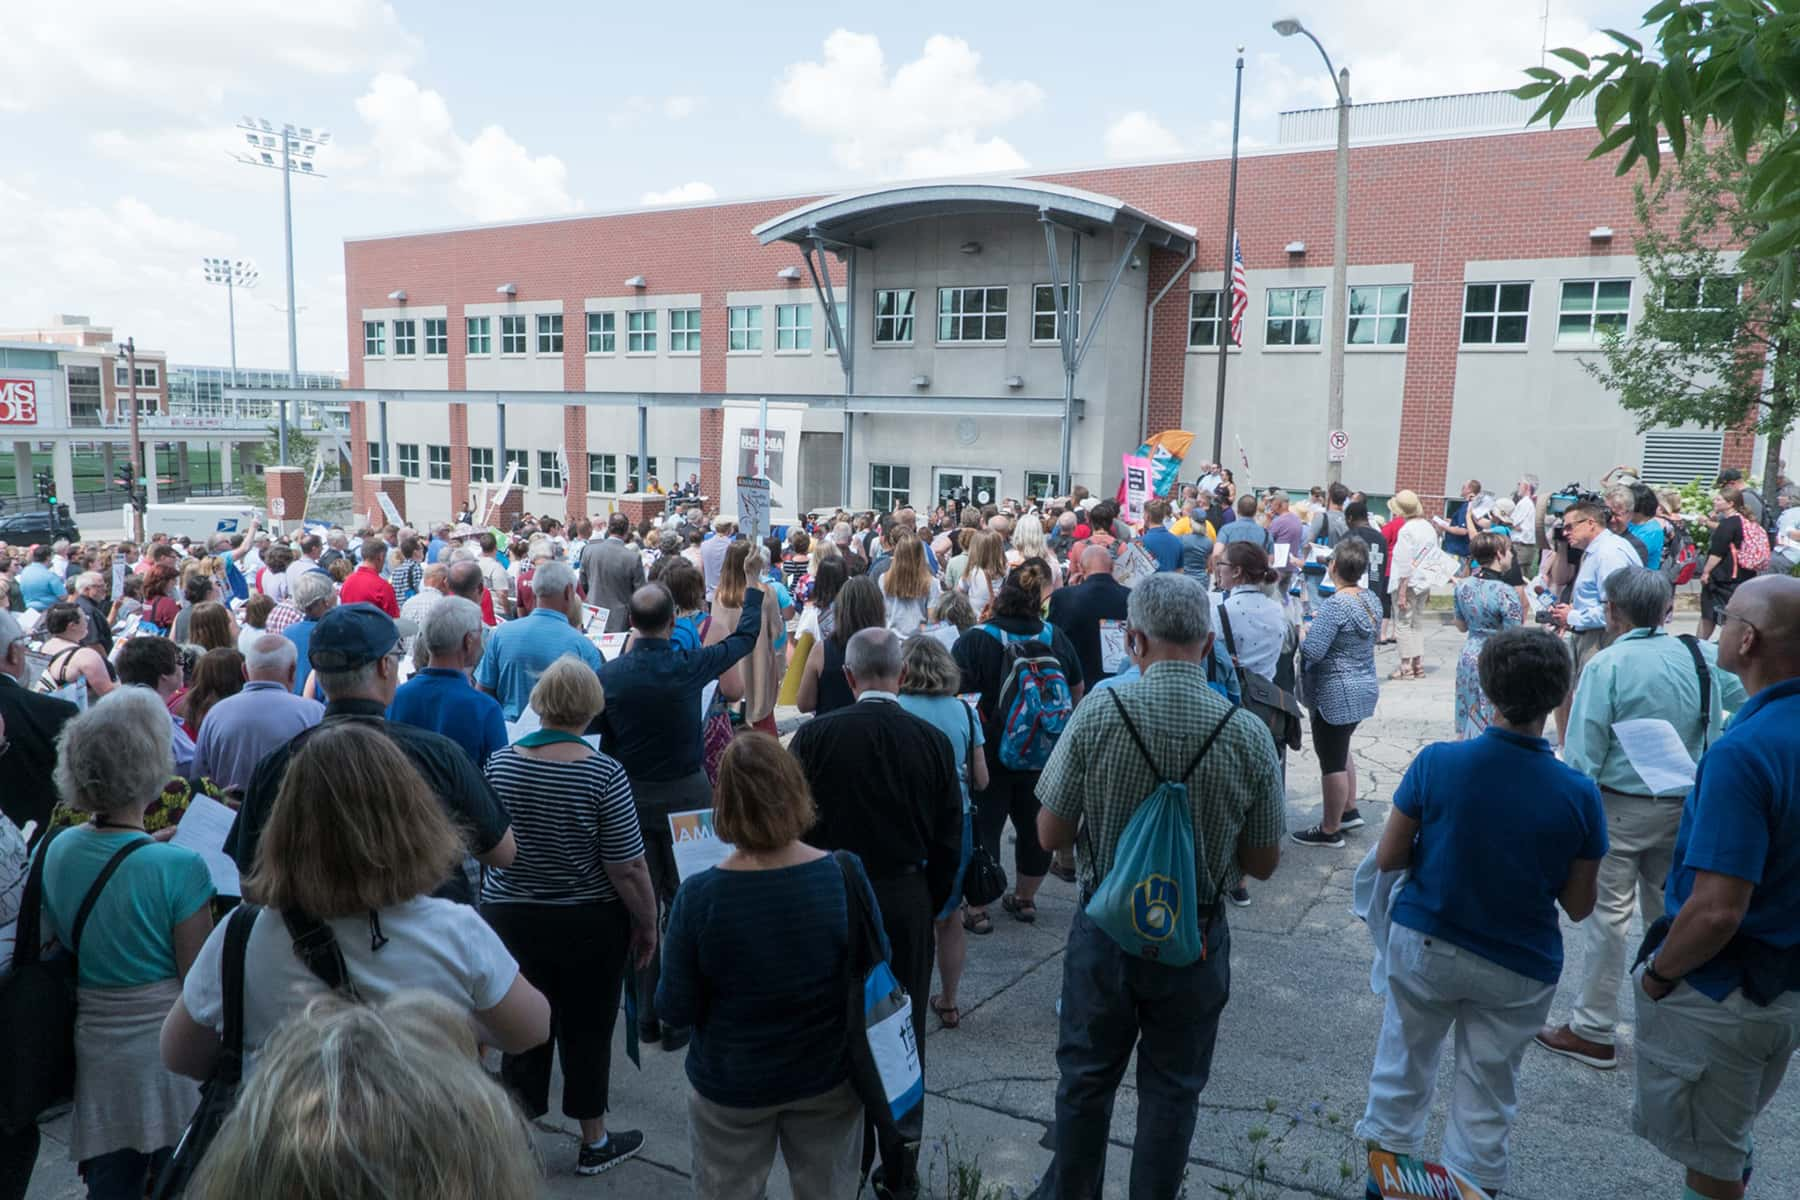 080719_lutheranmarchice_12